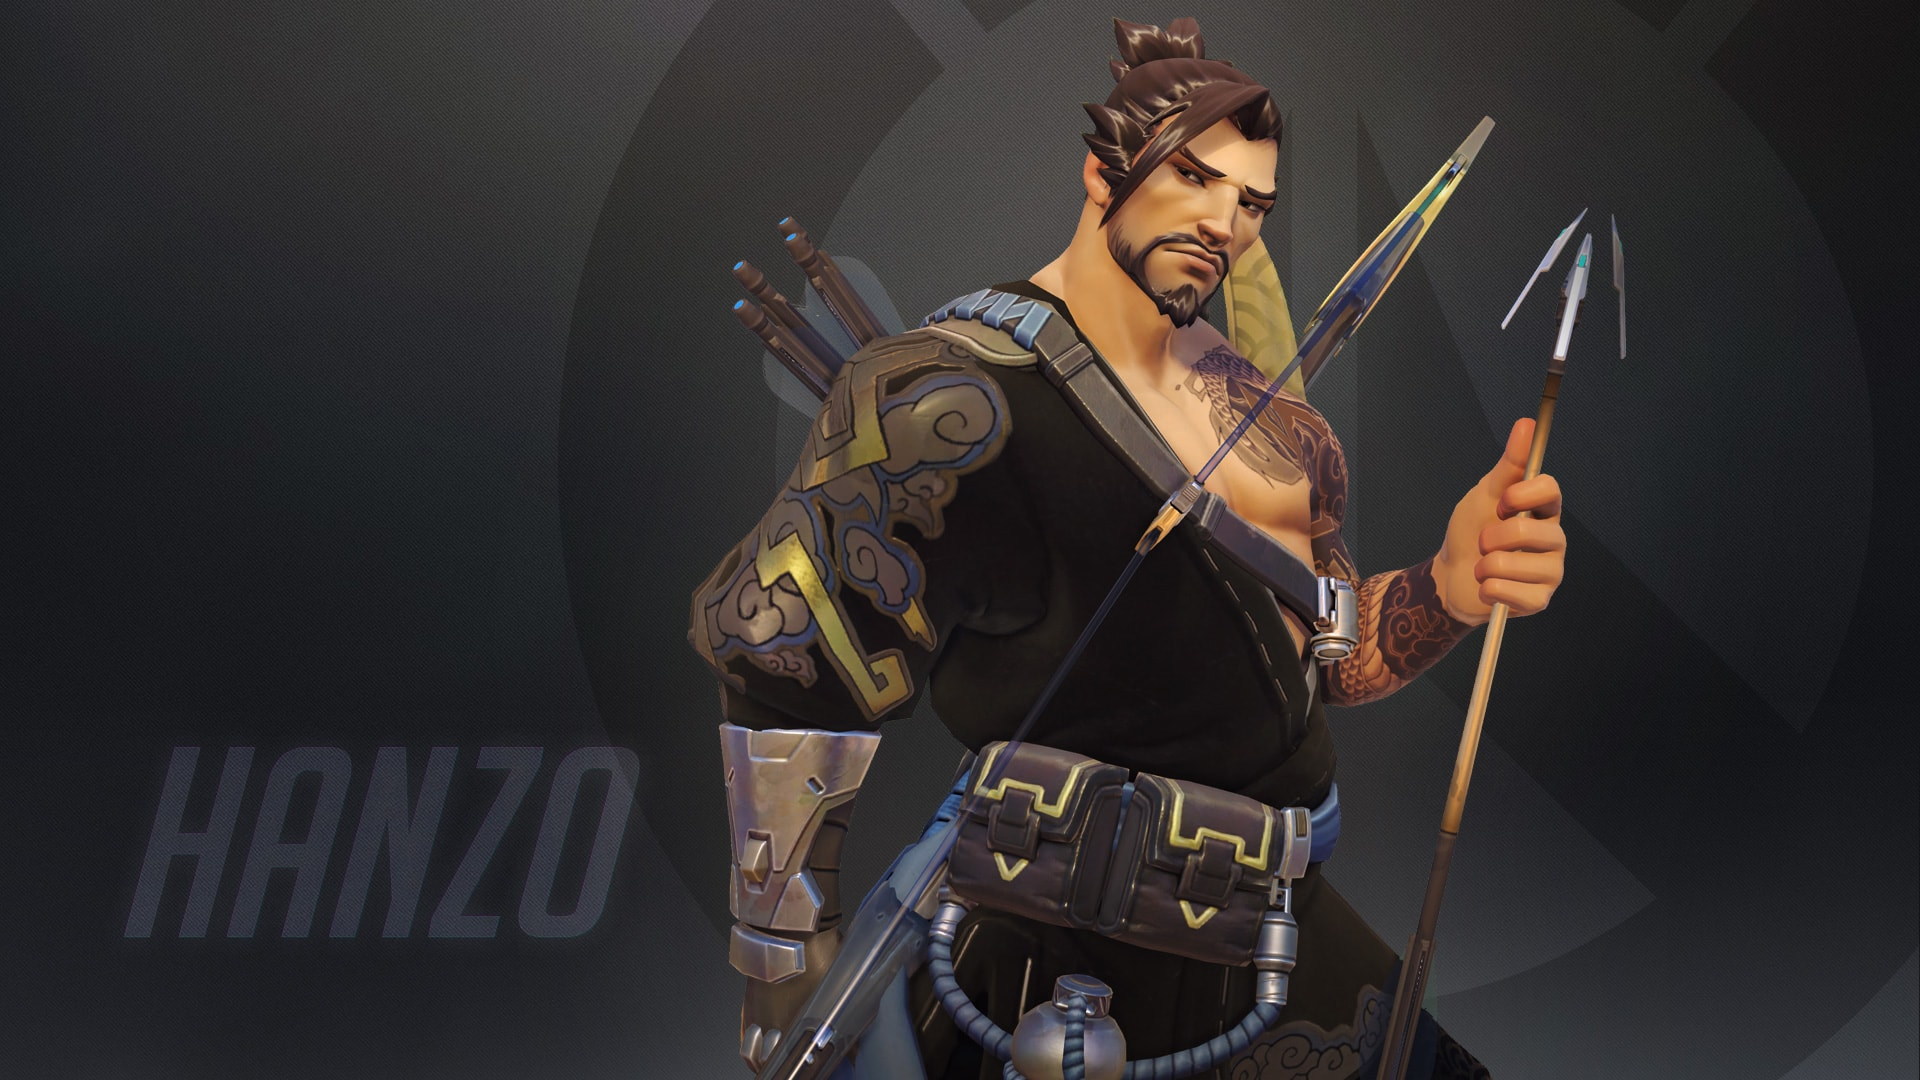 Overwatch : Hanzo Desktop wallpapers